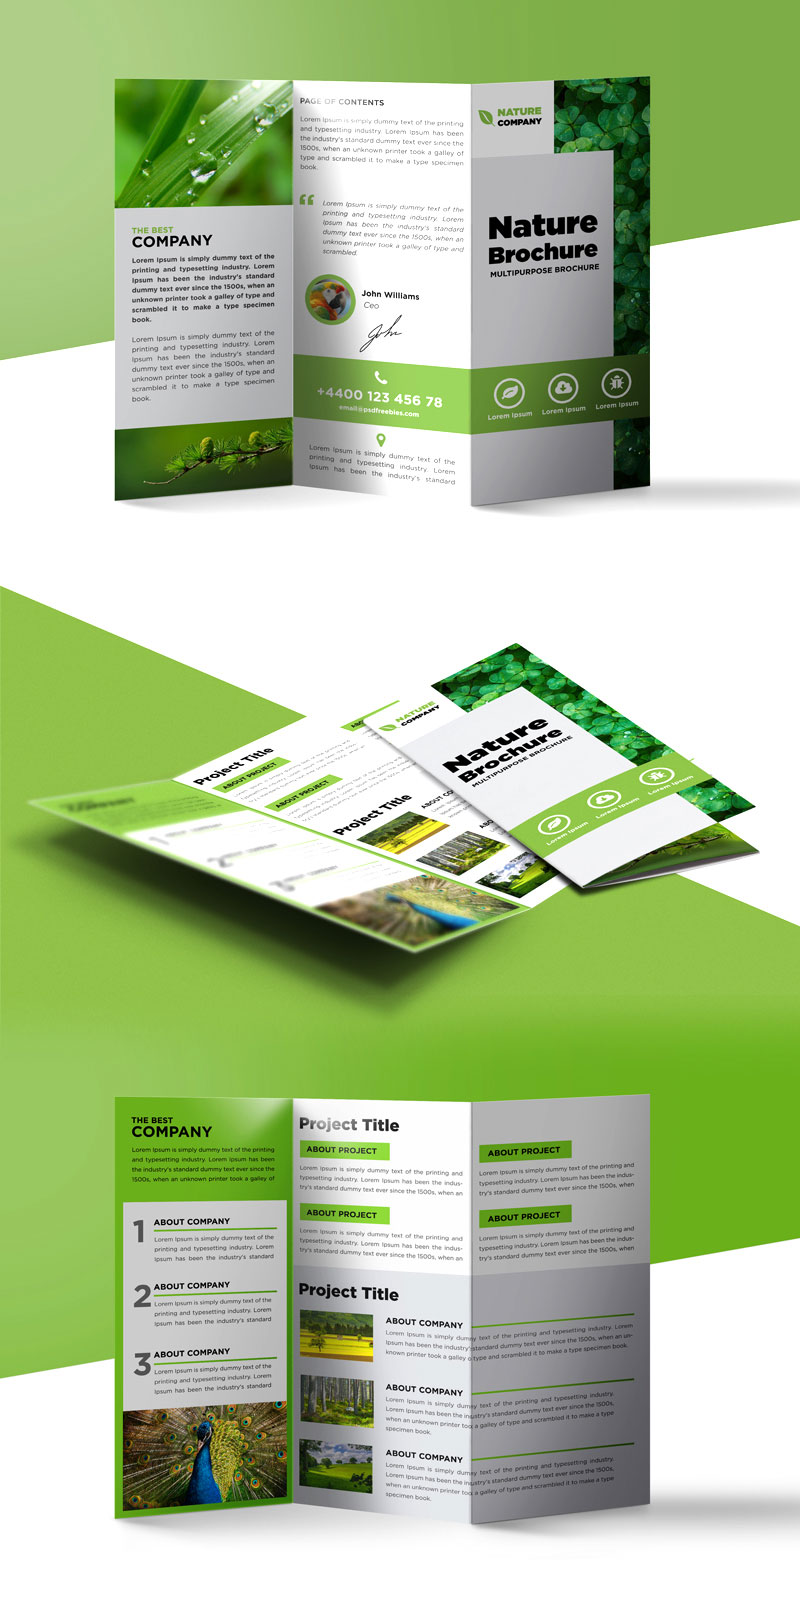 Nature tri fold brochure template free psd for Brochure templates for photoshop